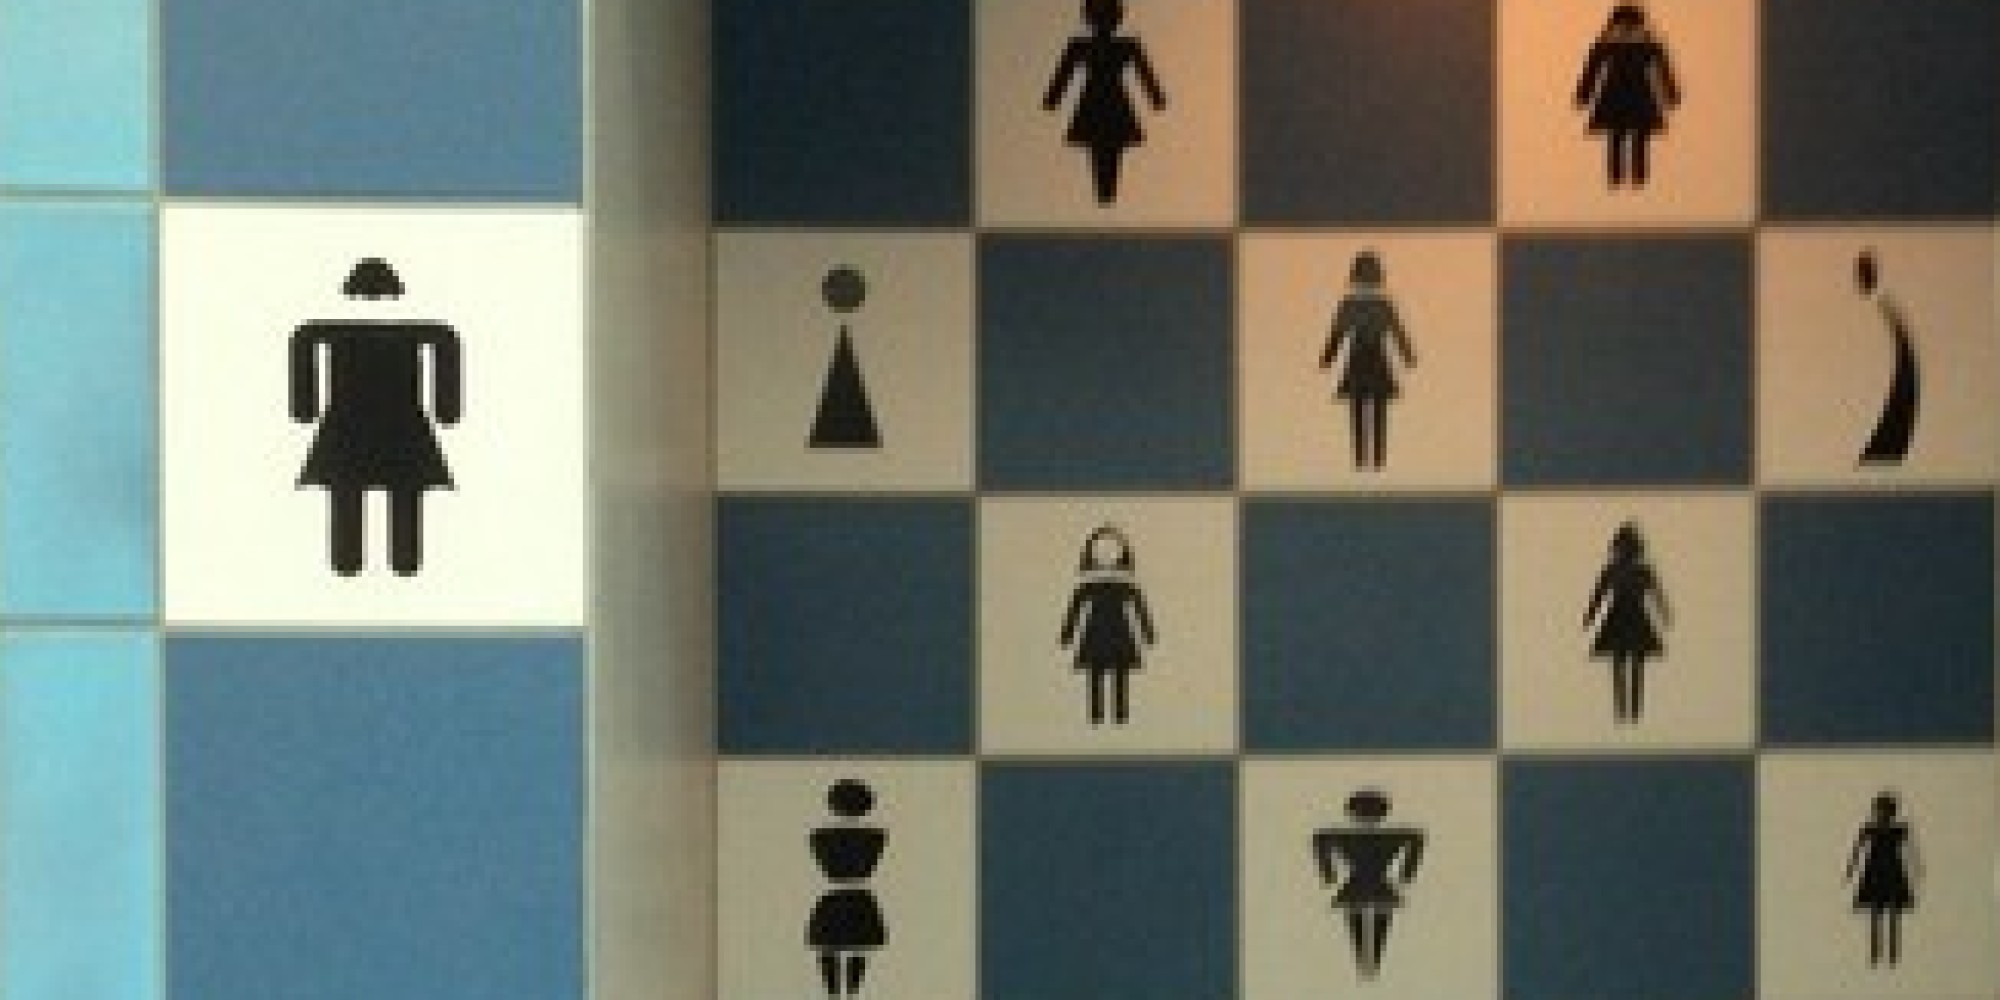 Bathroom Signs Japan bathroom sign at jacksonville international airport makes us